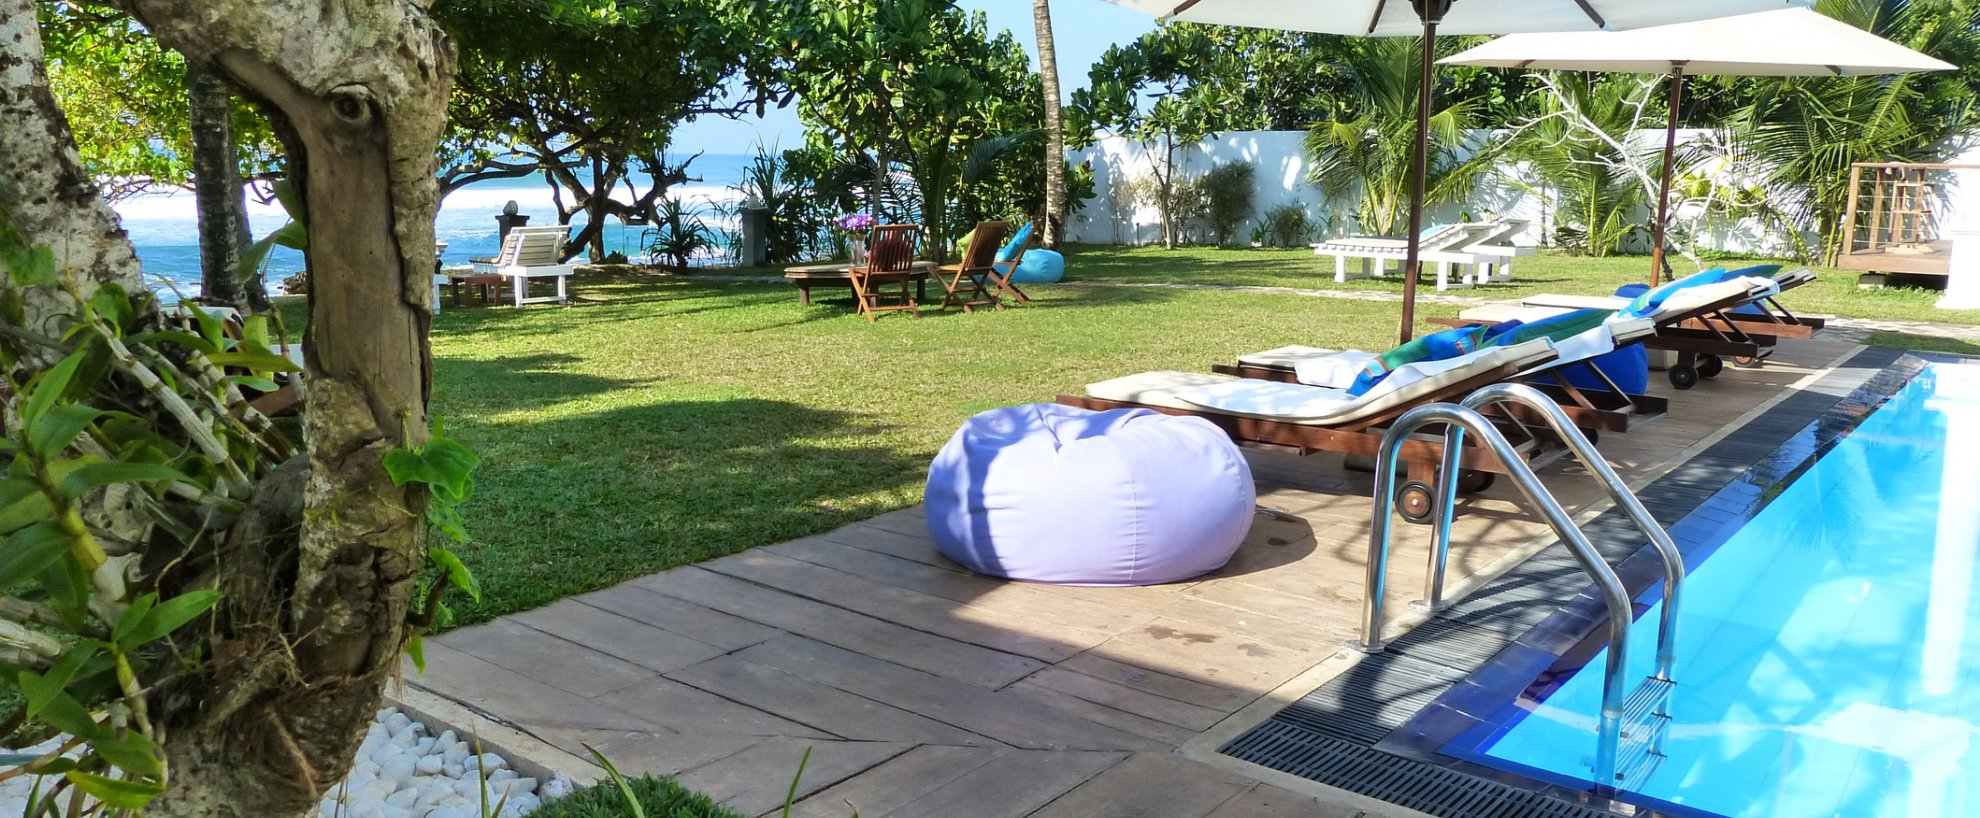 Sri Lanka Sithnara Ayurveda Resort Anlage Kuren Strand Pool Swimmingpool